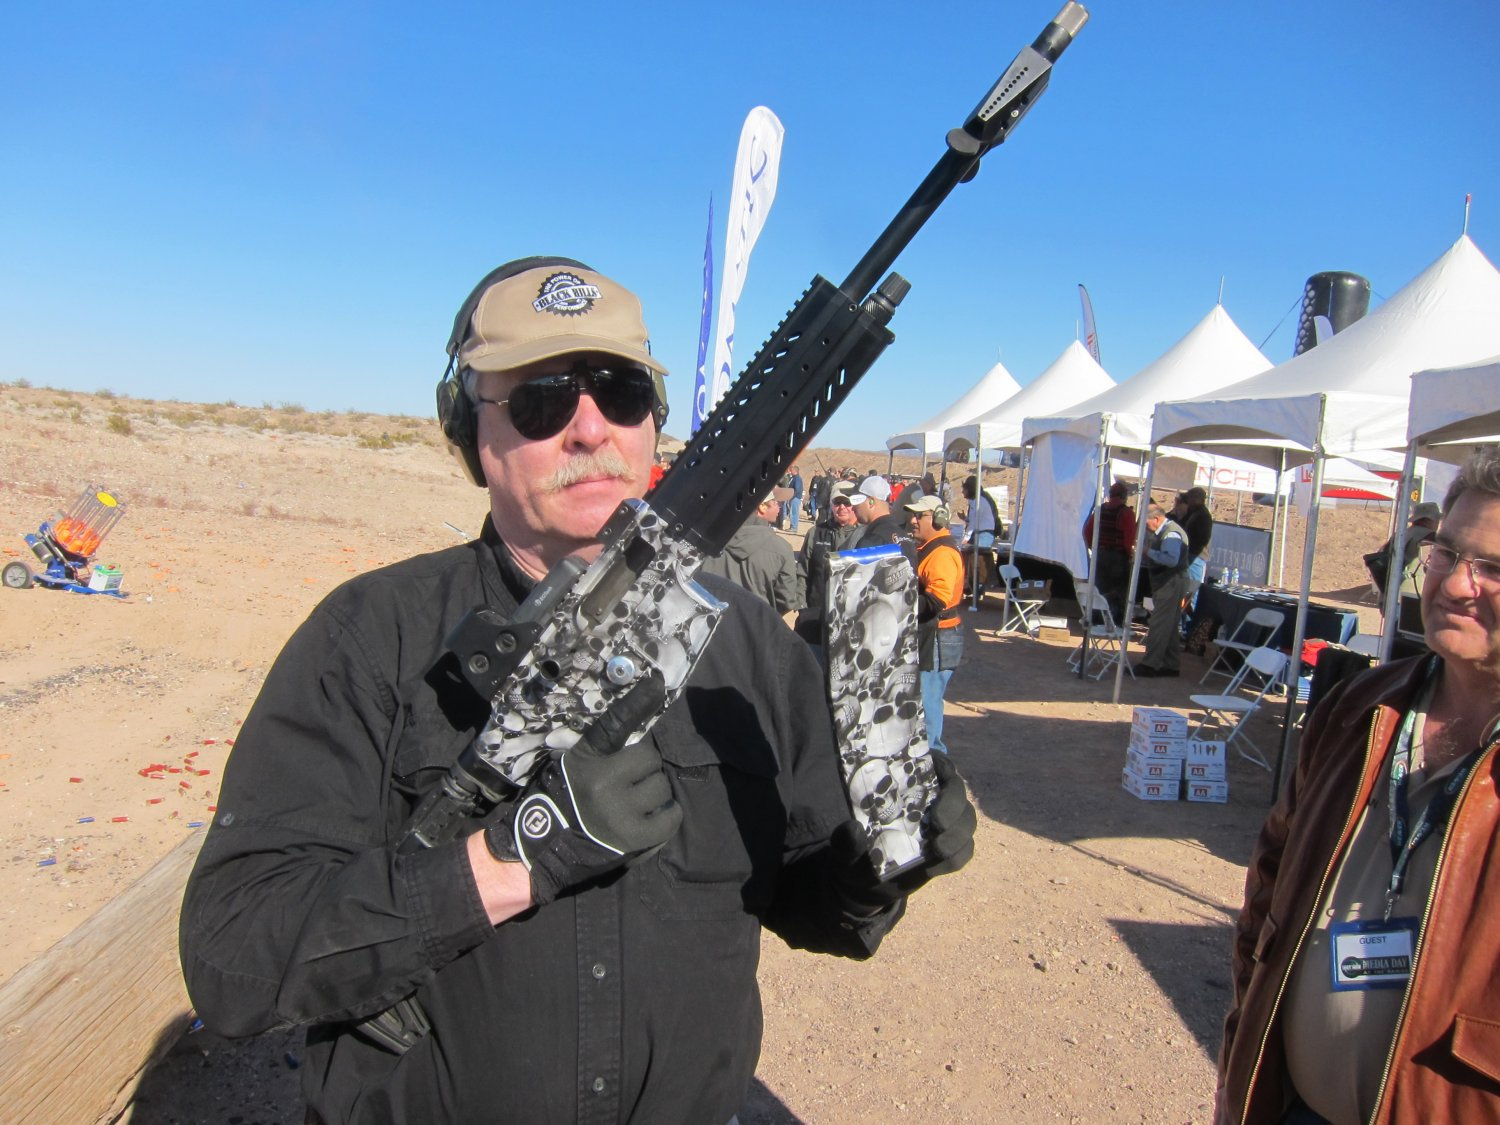 RAAC MKA 1919 Semi Auto 12 Gauge Shotgun Tactical AR Shotgun 8 RAAC Akdal MKA 1919 Shotgun Super Tuned by Firebird Precision and Run at the Range at SHOT Show 2012 Media Day: Mag Fed, Gas Operated Semi Auto 12 Gauge Tactical AR 15 Shotgun with 10 Rounds of 12ga Firepower for Martial Combat or Competition! (Video!)